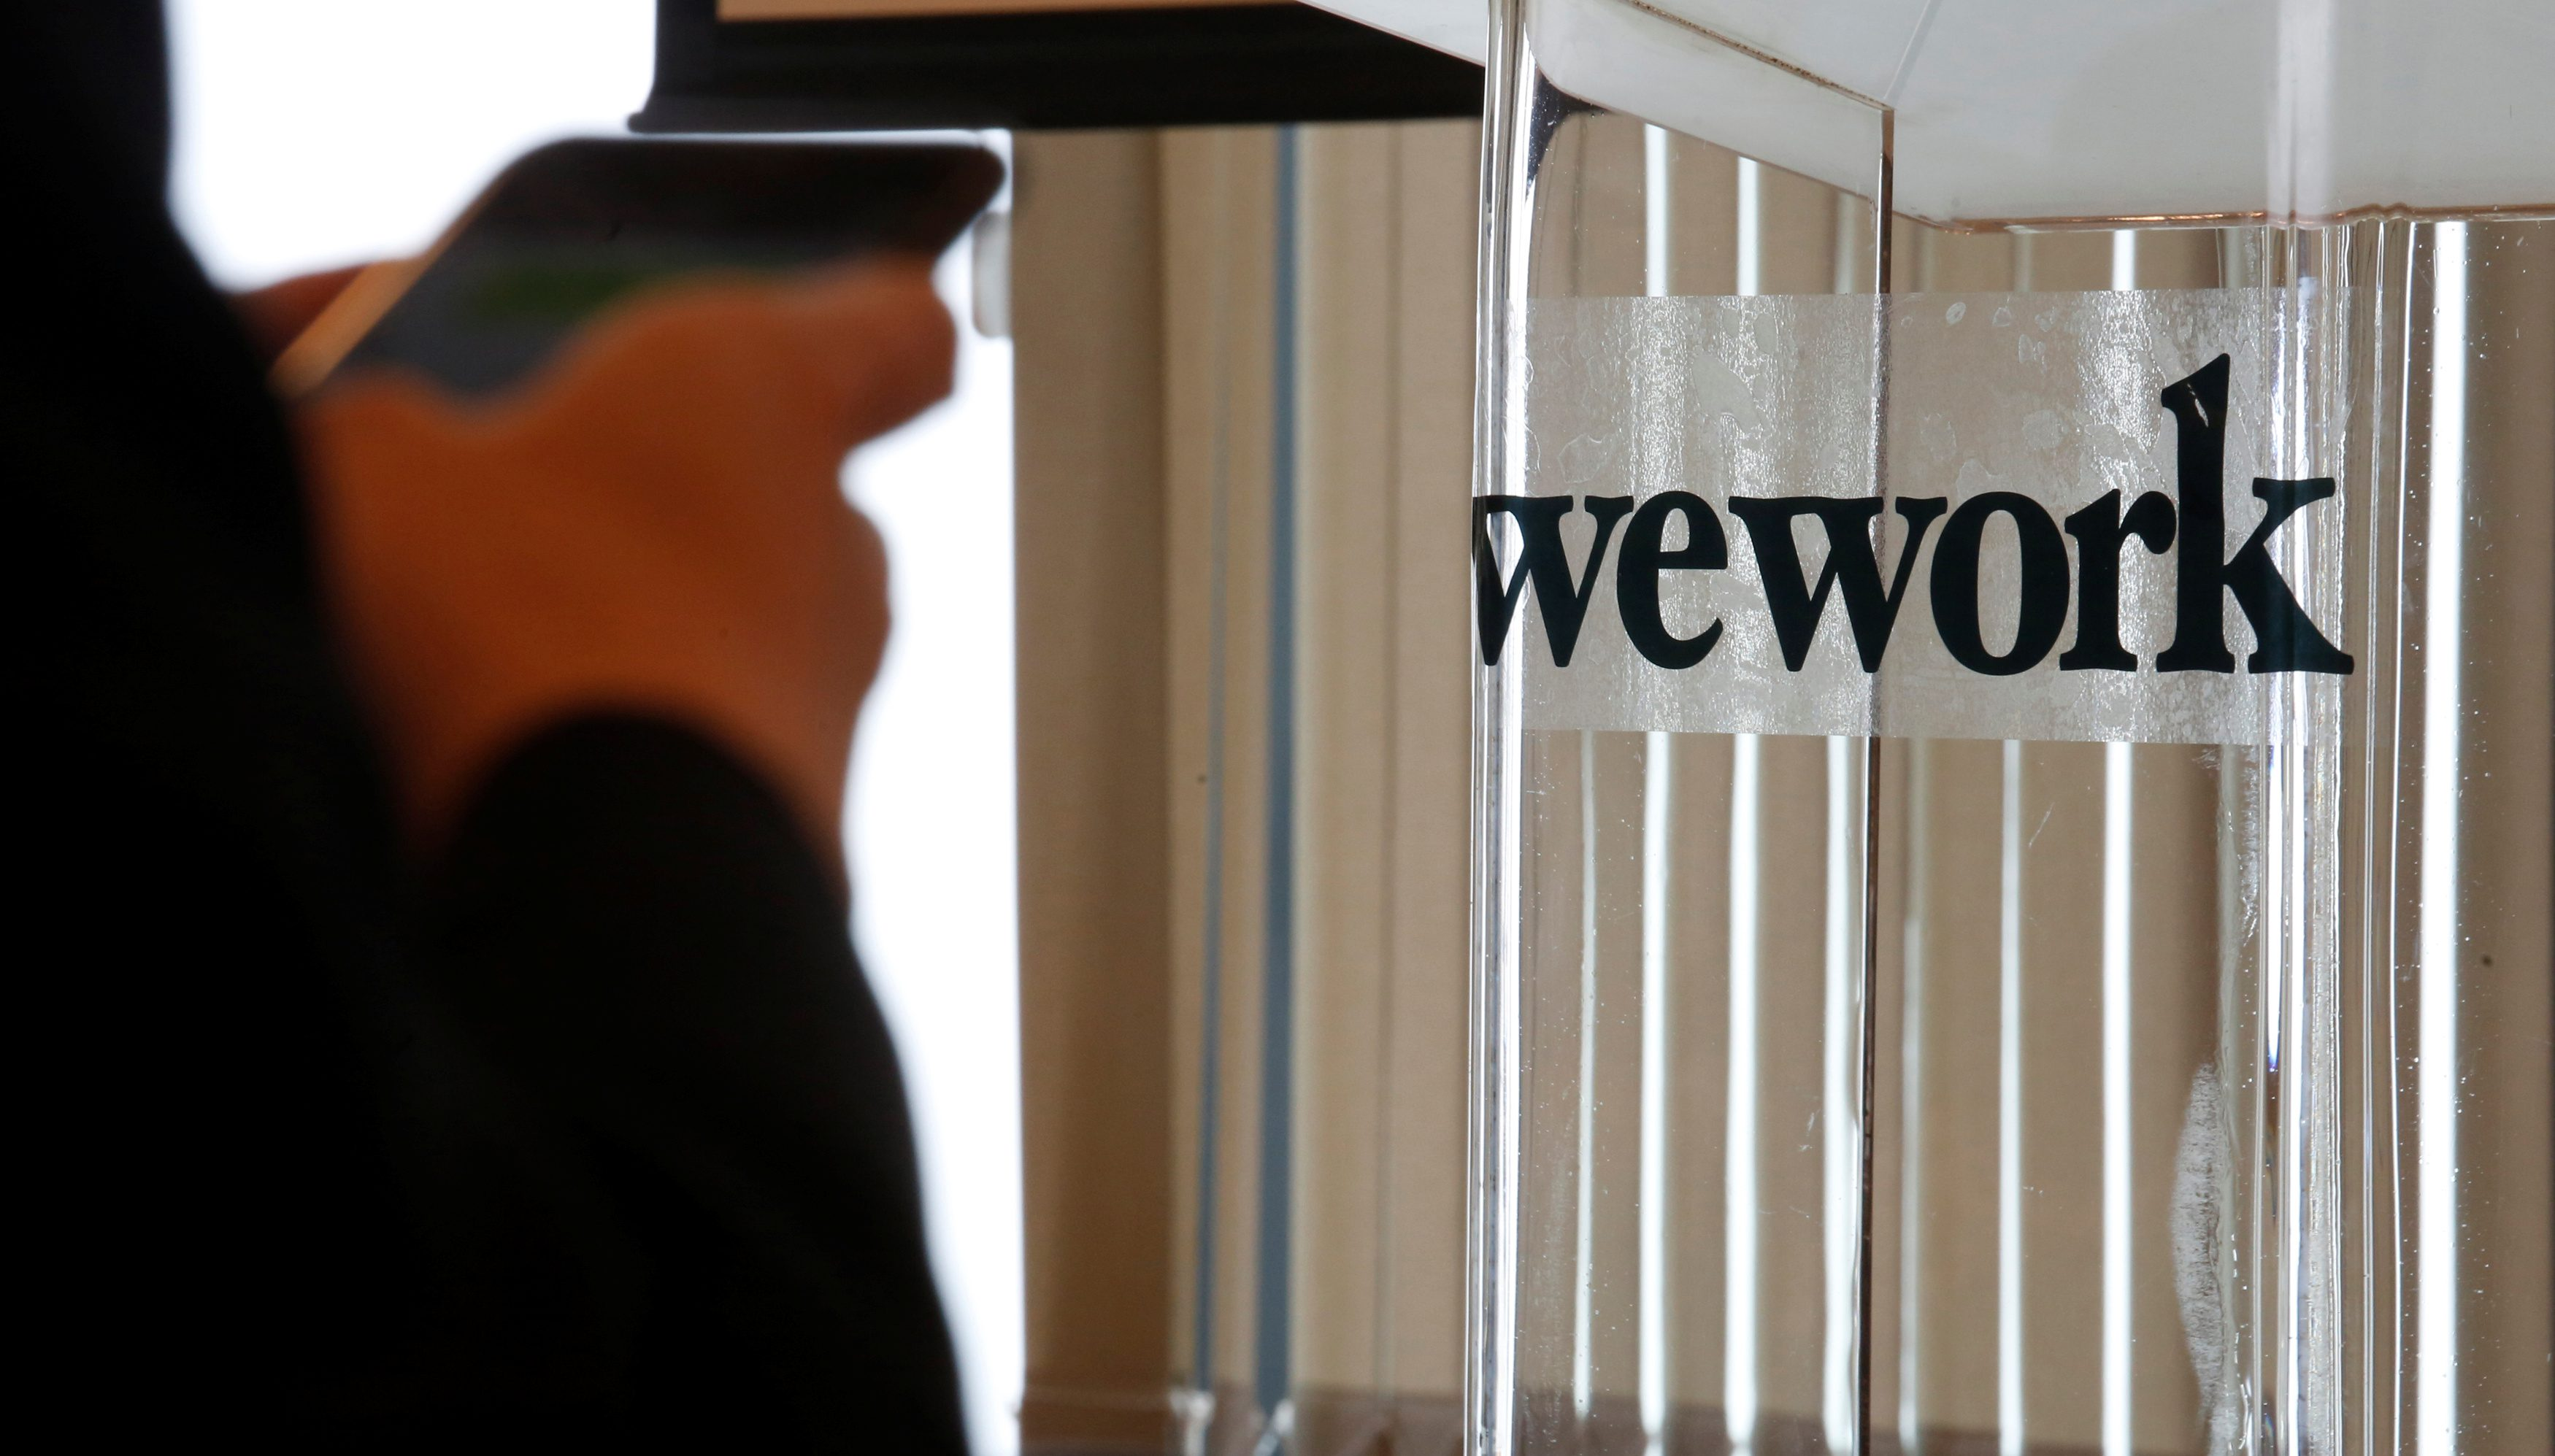 A guest attends the opening ceremony of WeWork Hong Kong flagship location in Hong Kong, China February 23, 2017. REUTERS/Bobby Yip - RC1FDE487F00